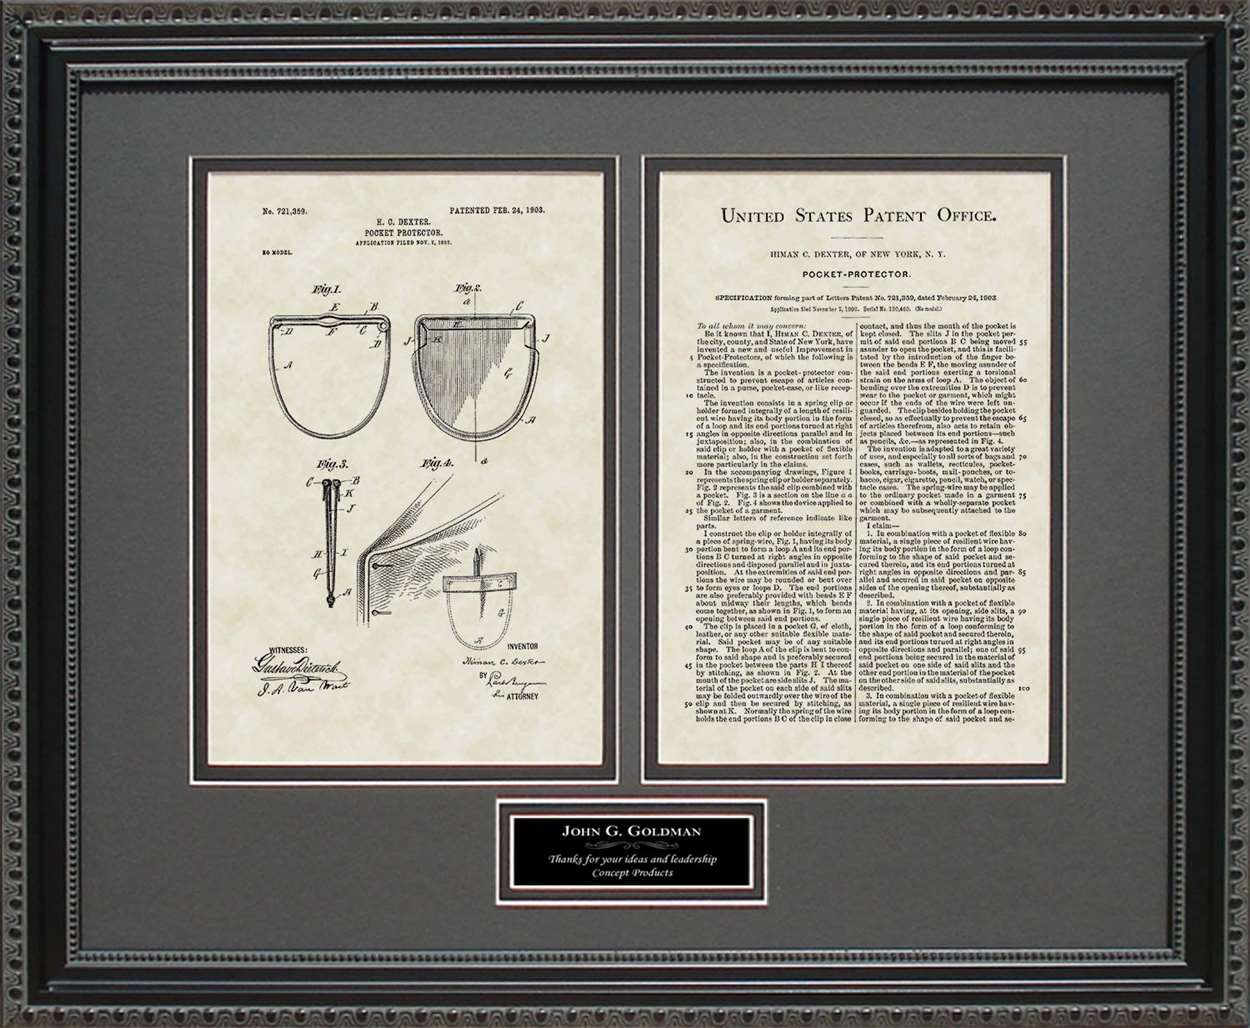 Personalized Pocket Protector Patent, Art & Copy, Dexter, 1903